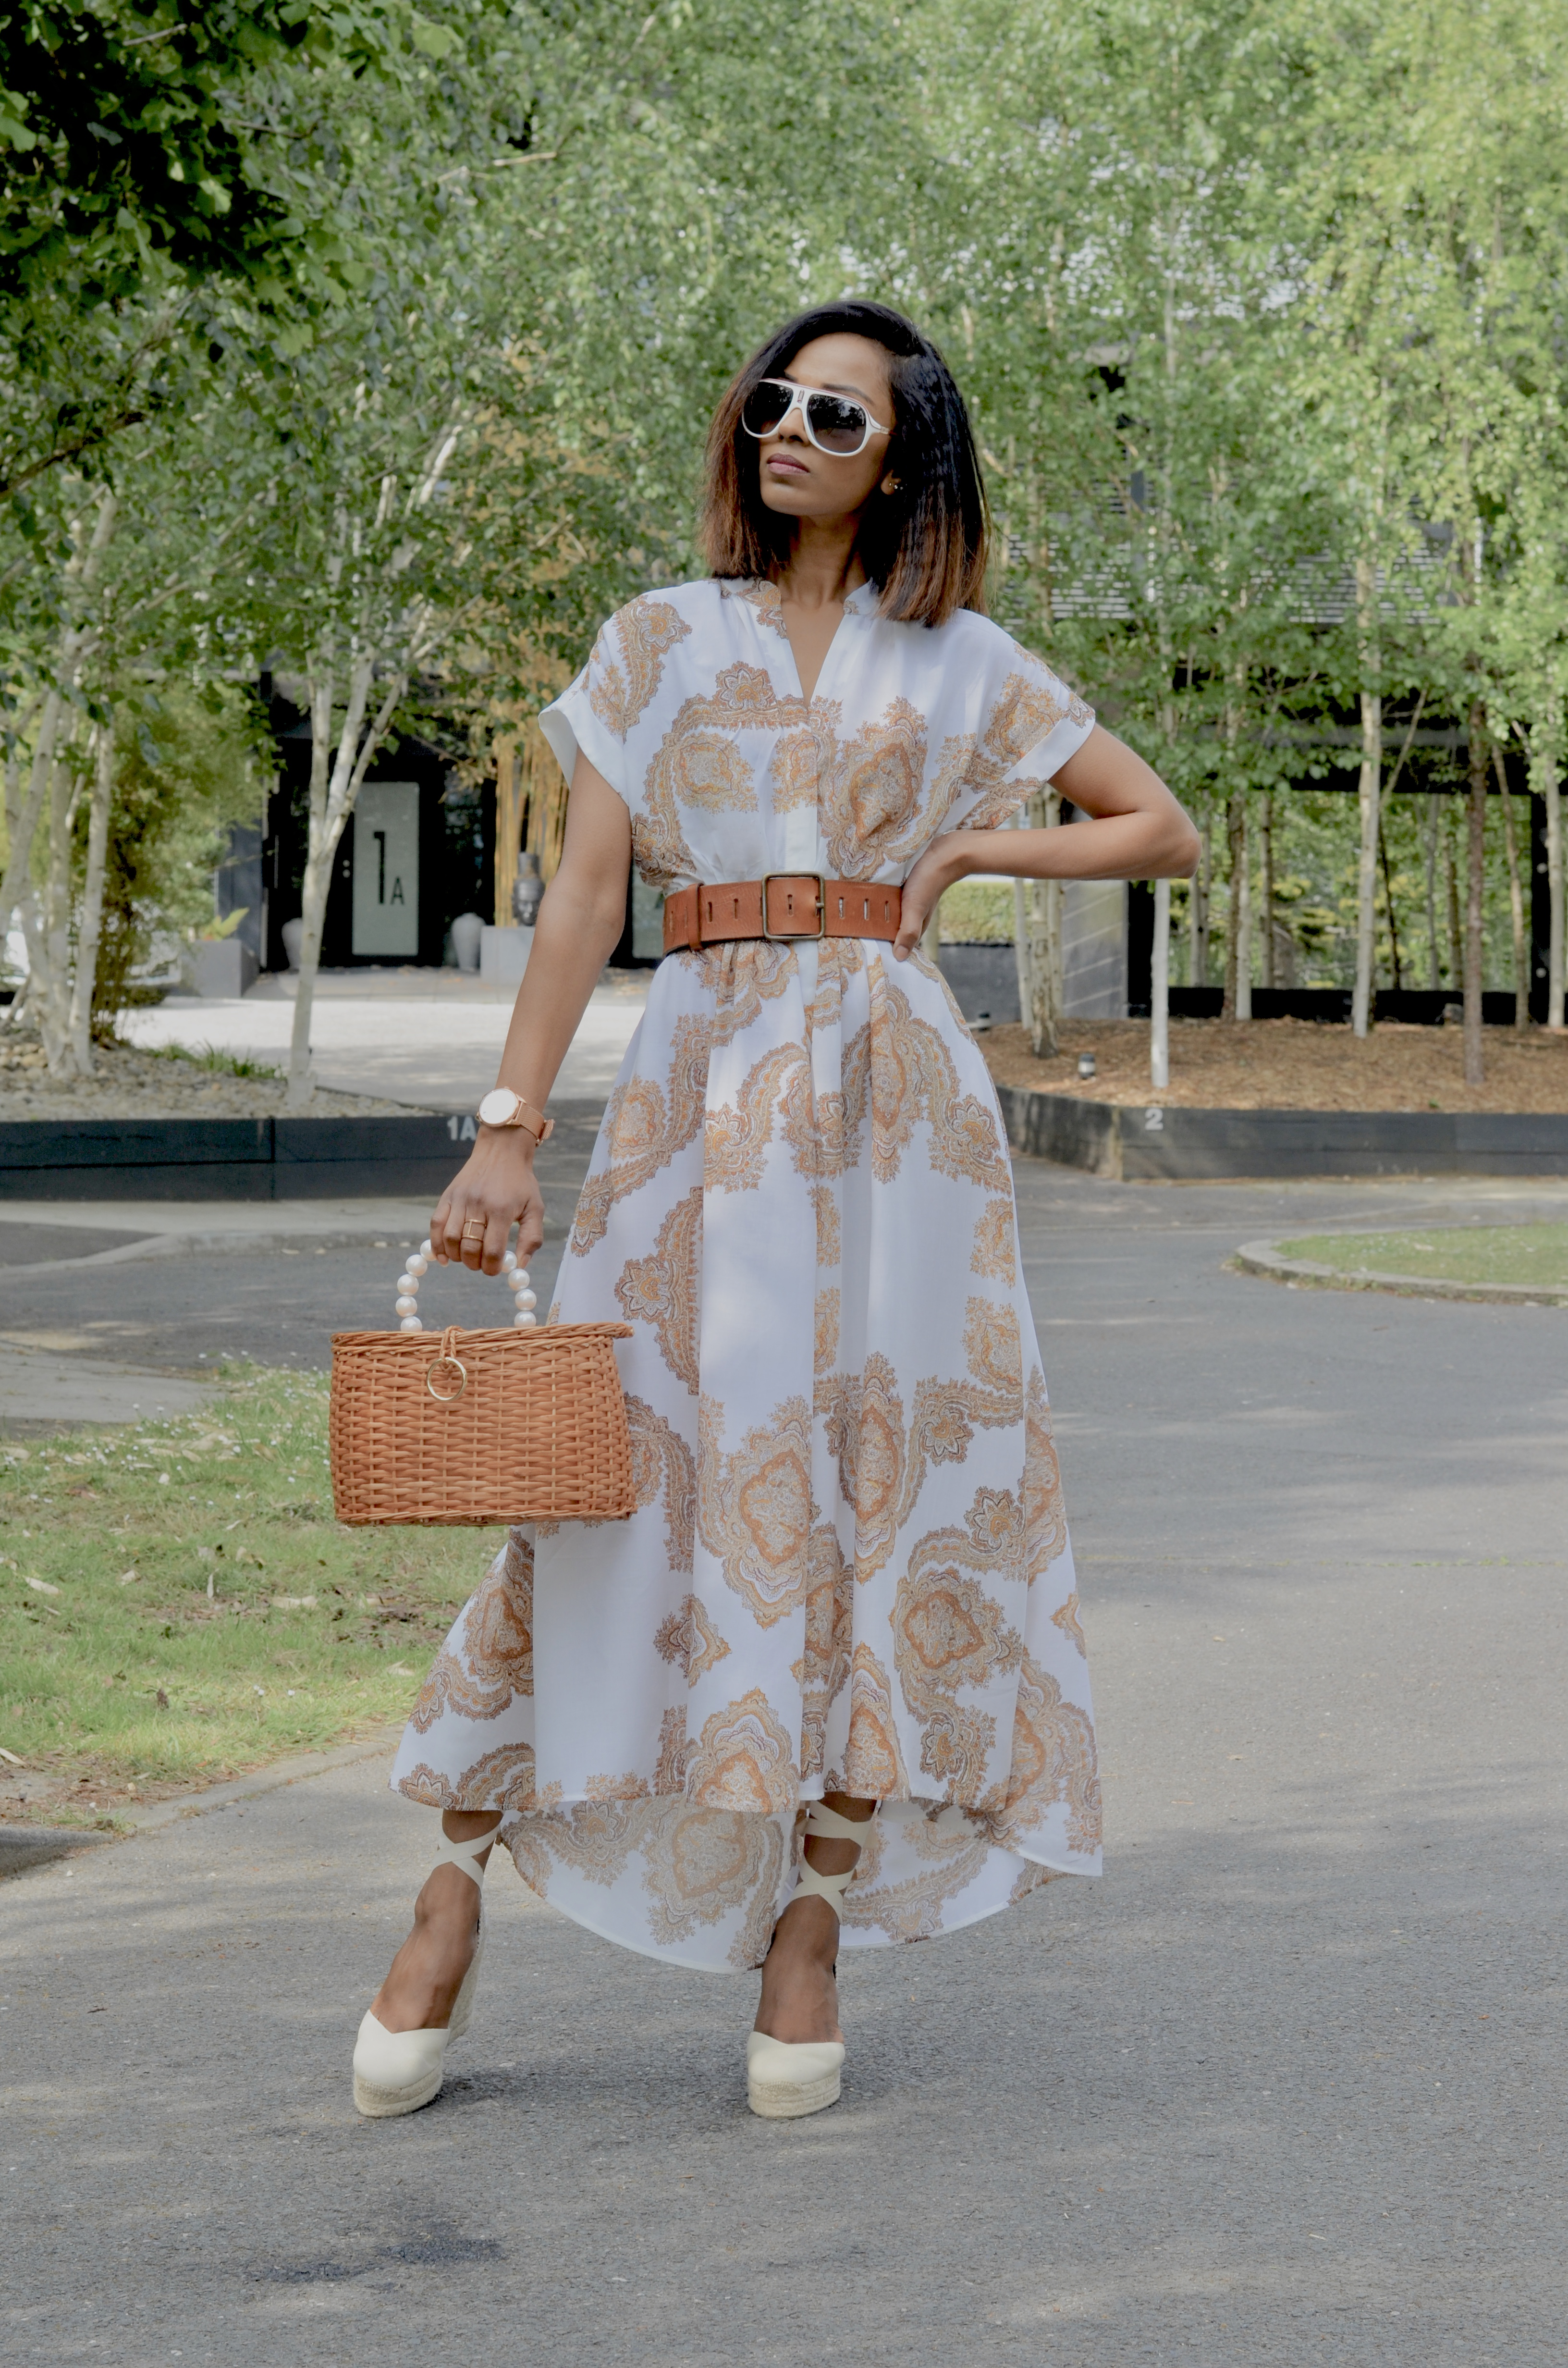 HOW TO STYLE A PAISLEY MAXI DRESS